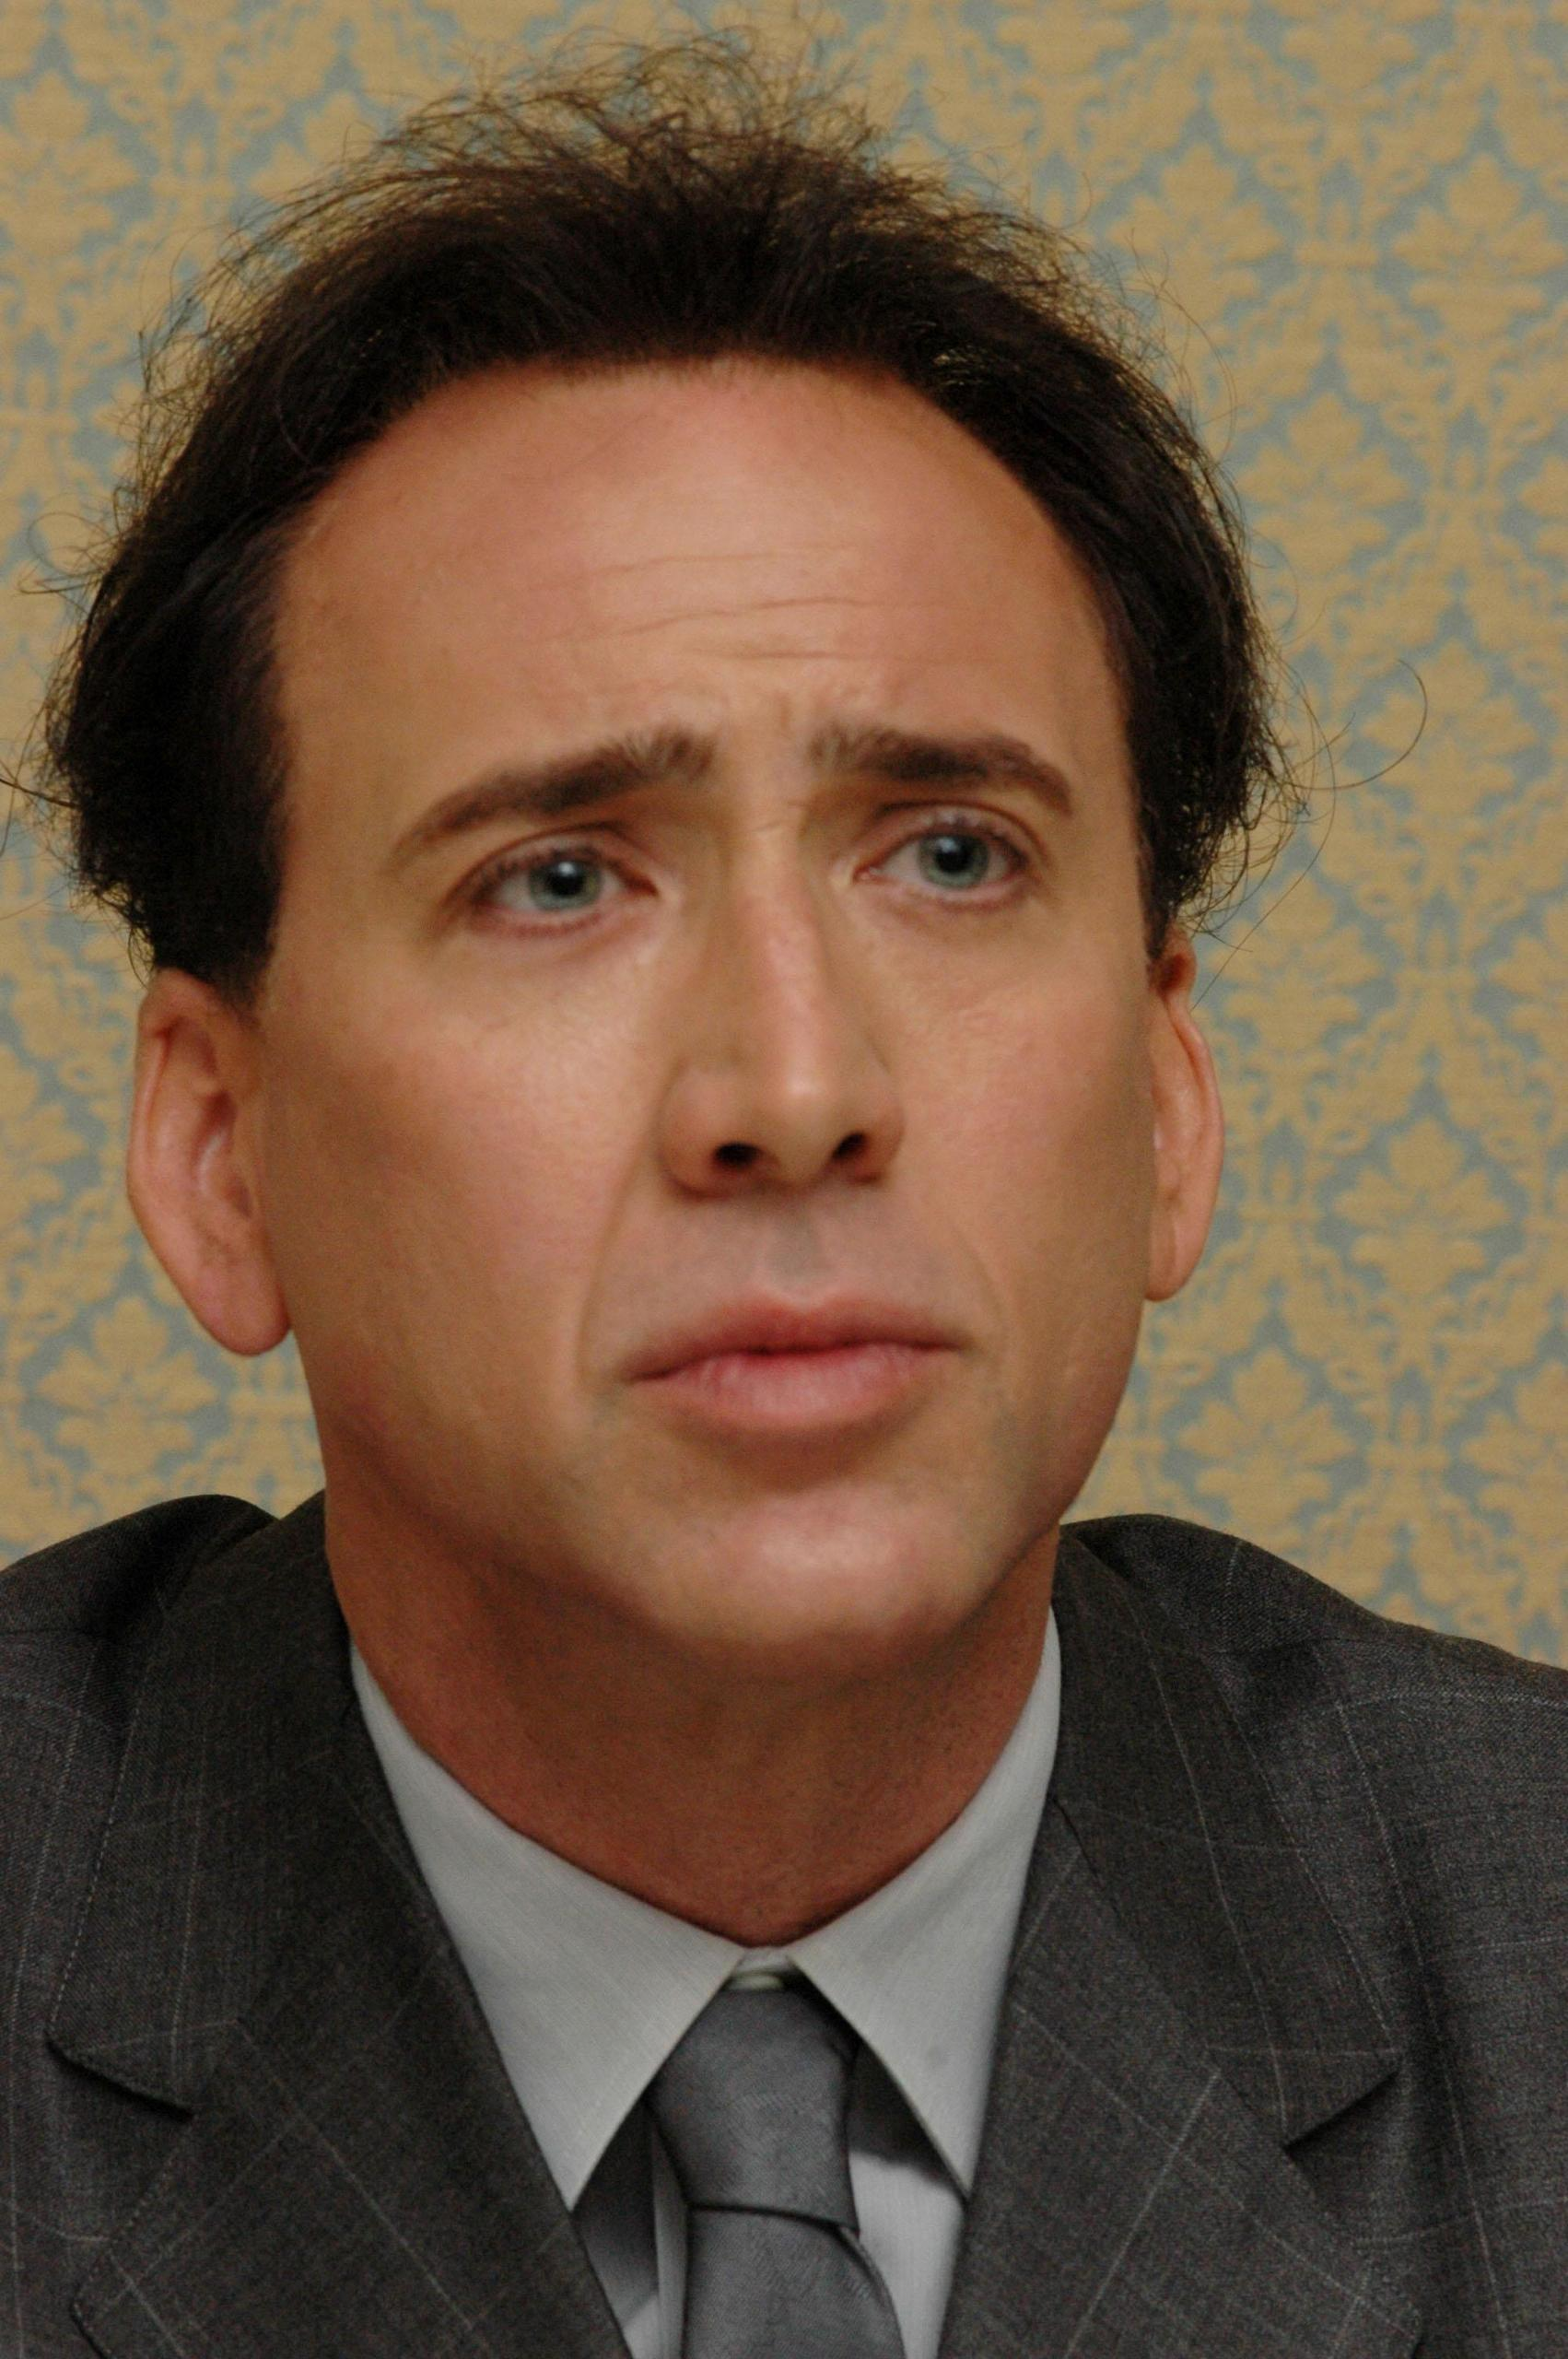 Astounding What Happened To Nicolas Cage T J Brearton Short Hairstyles Gunalazisus